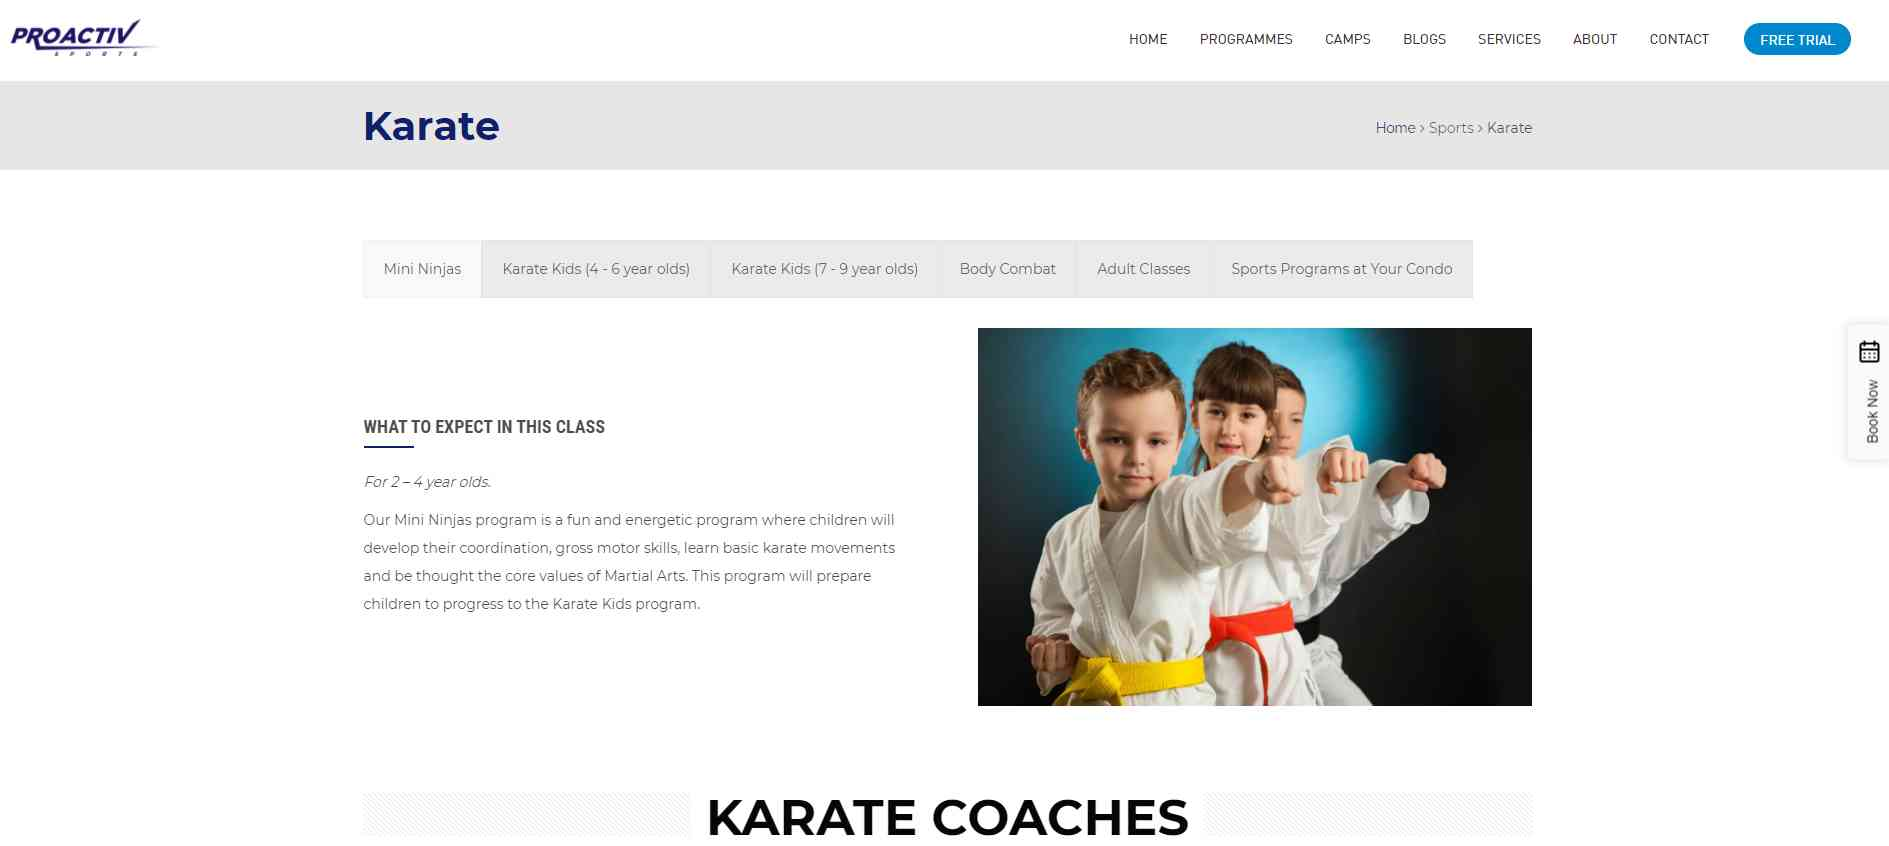 PRoactiv Top Karate Classes in Singapore